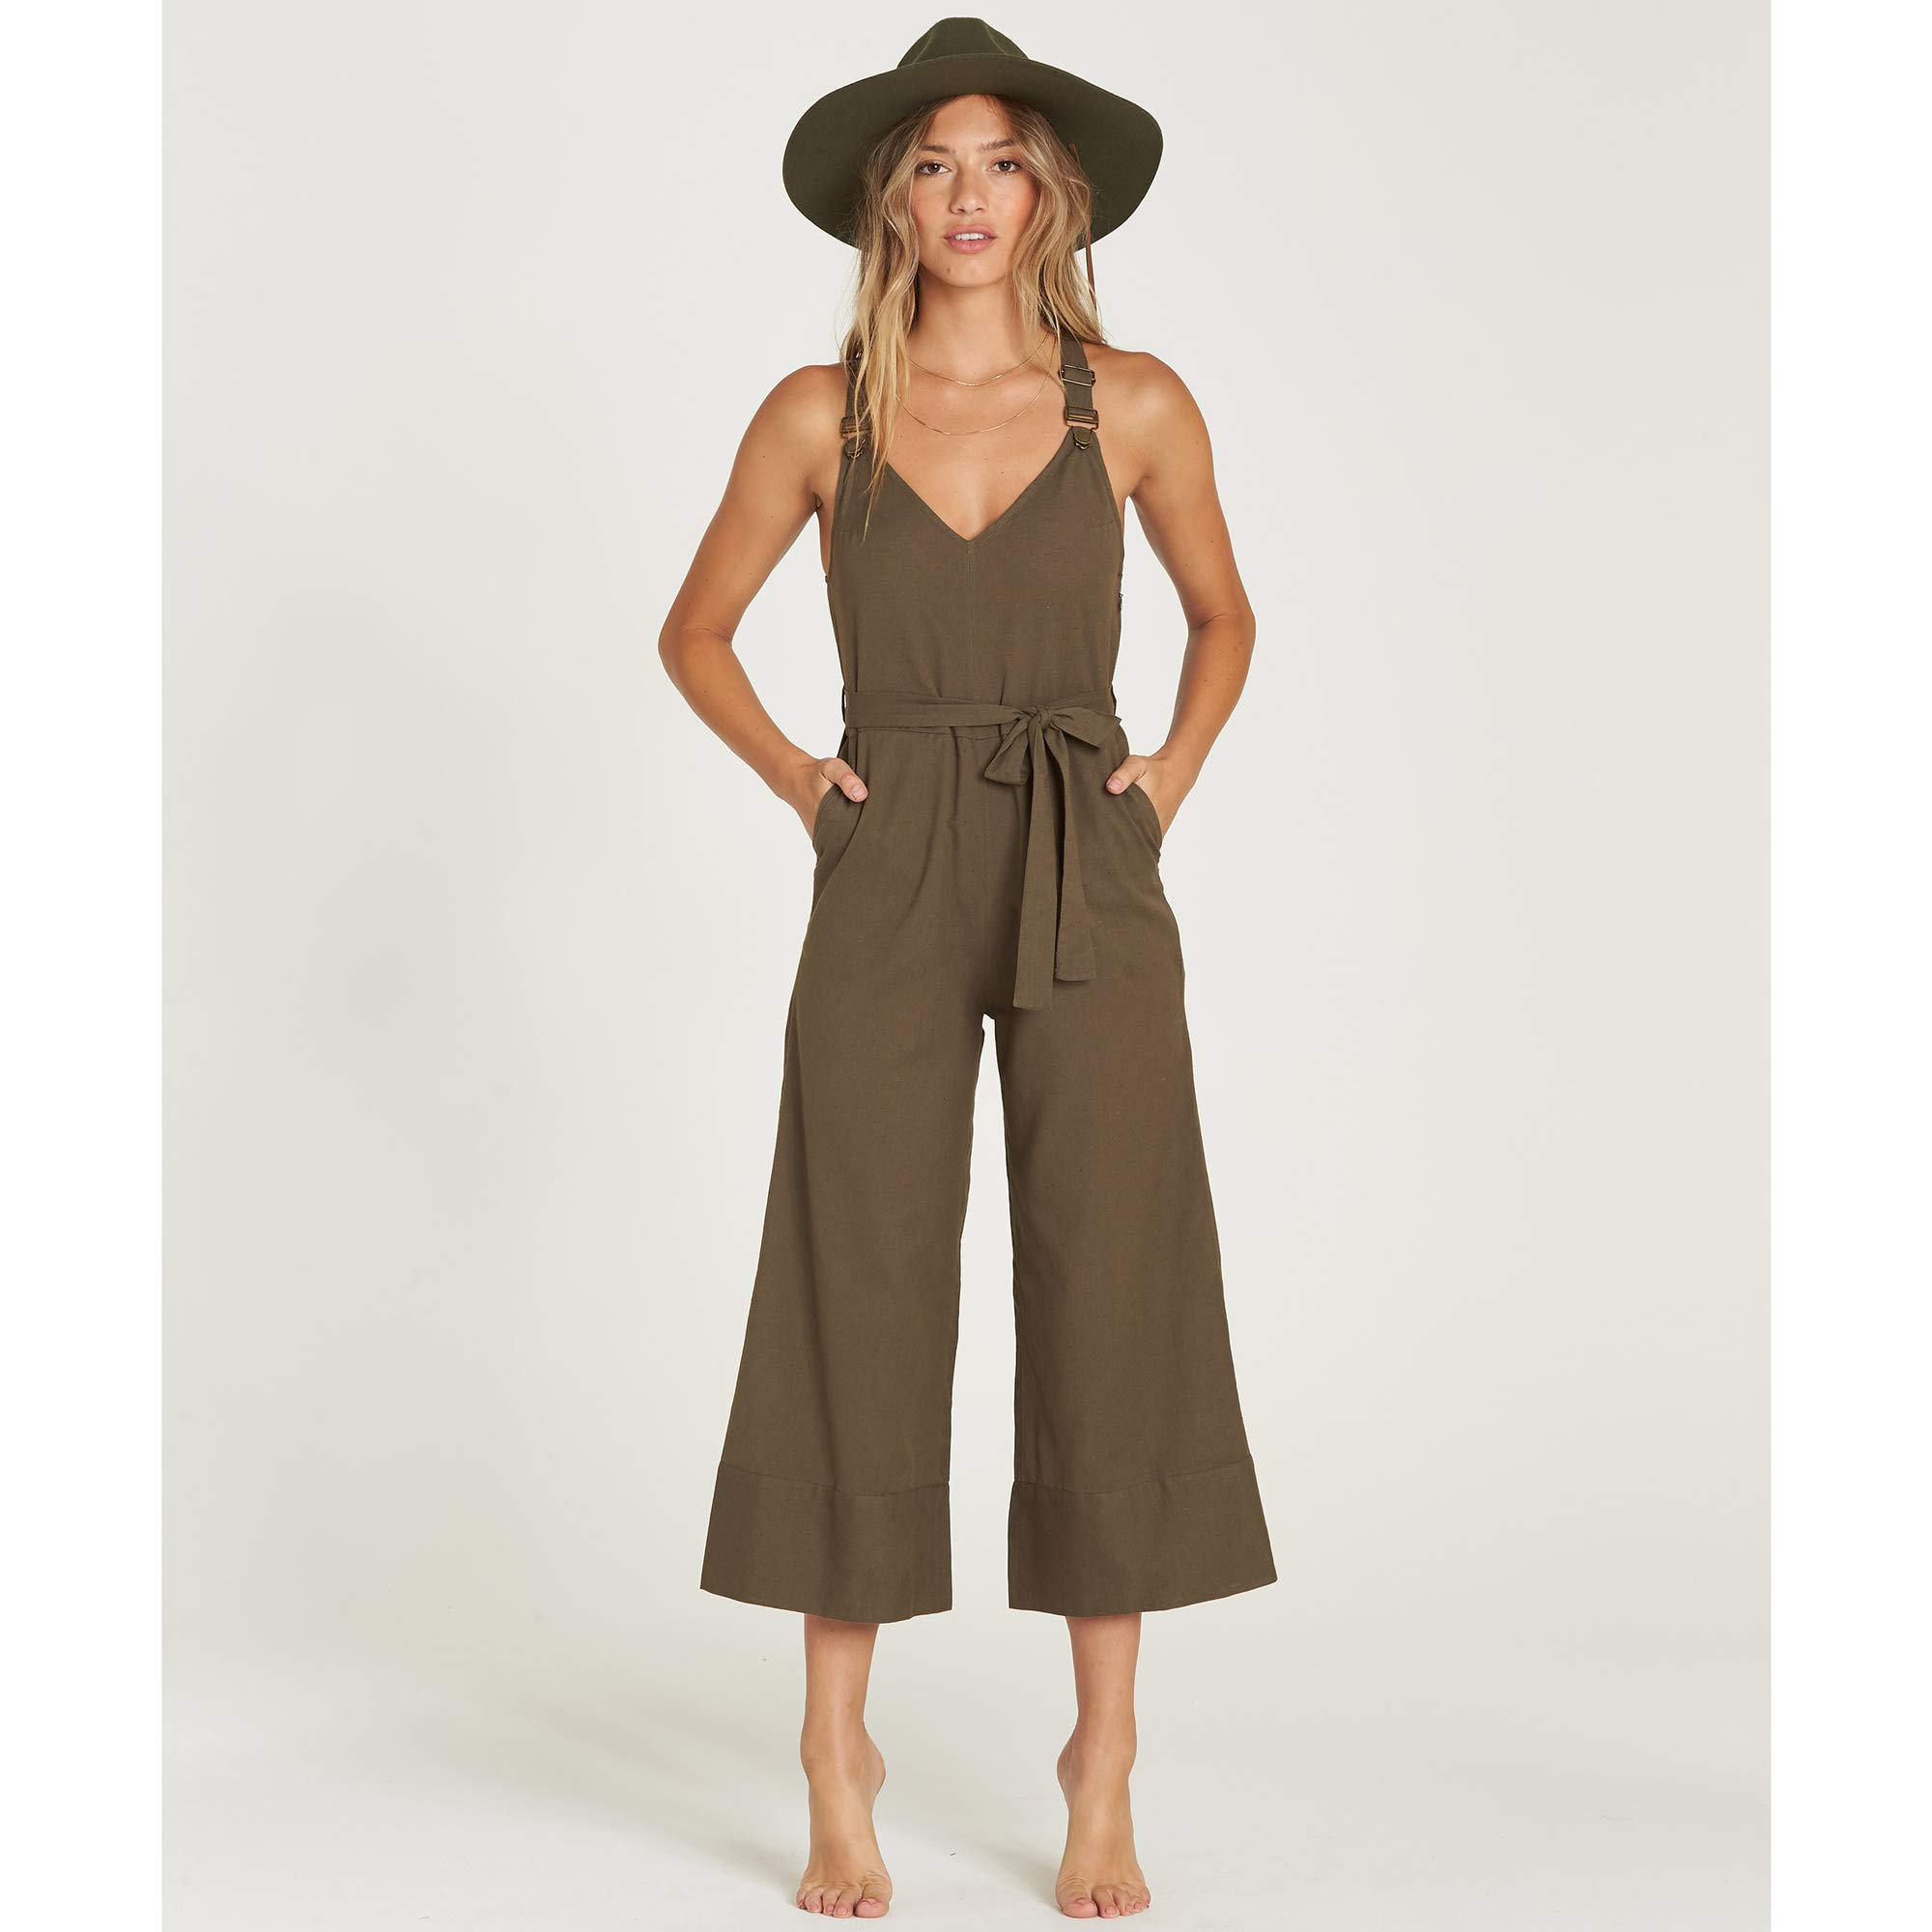 Billabong Women's Bella Day Overall, Olive, S